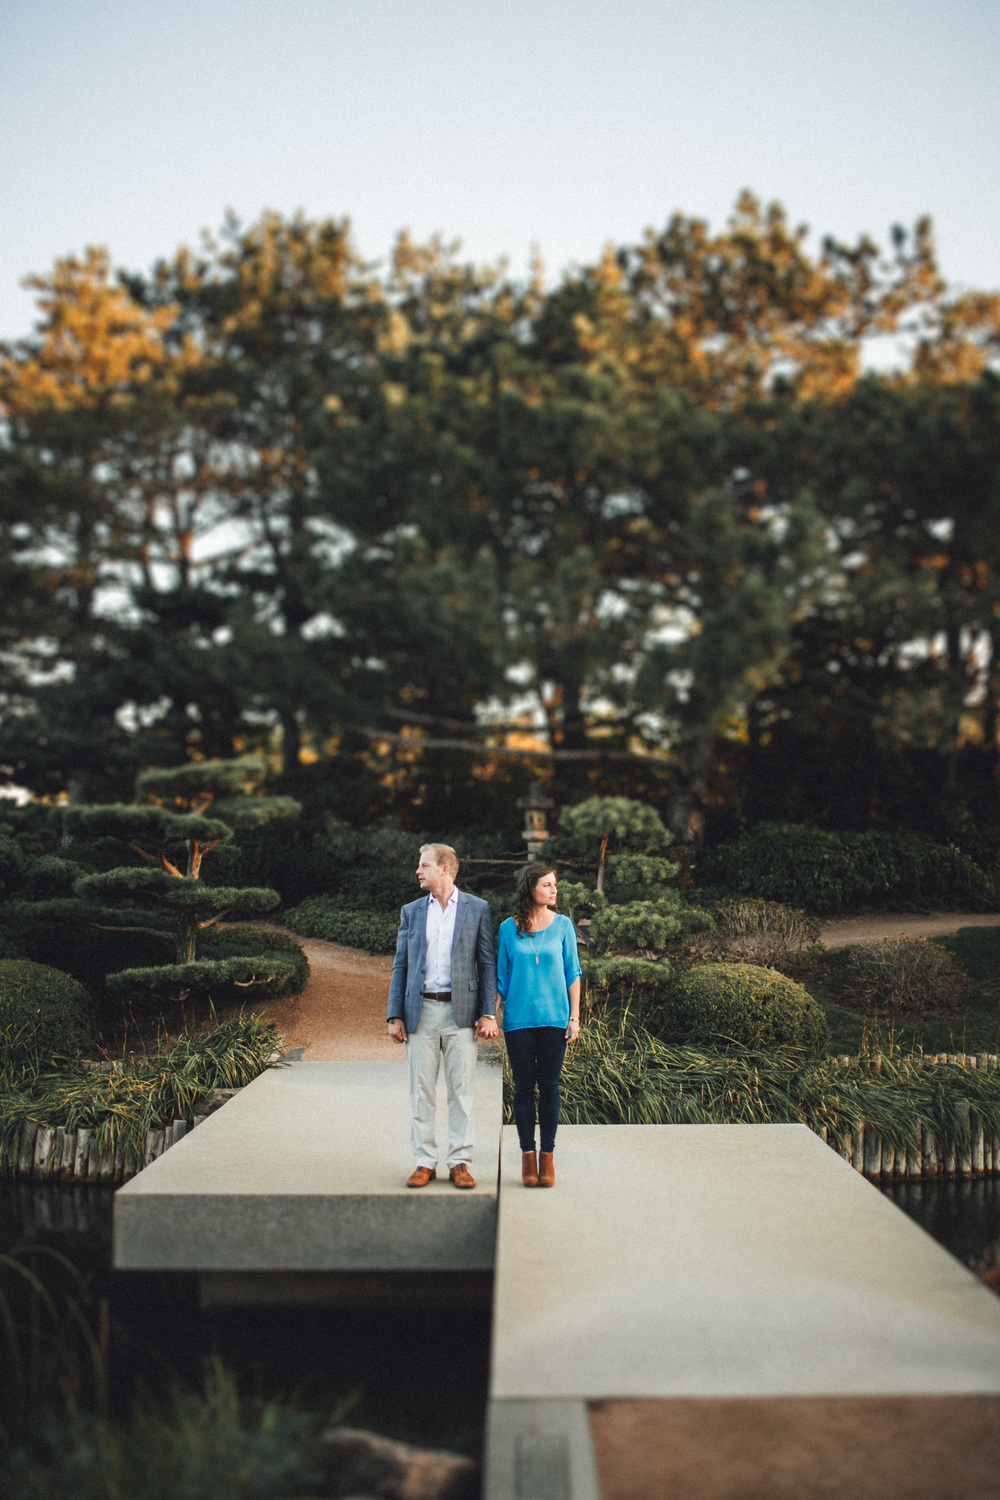 mayden photography_chicago botanical gardens engagement photo-12.jpg